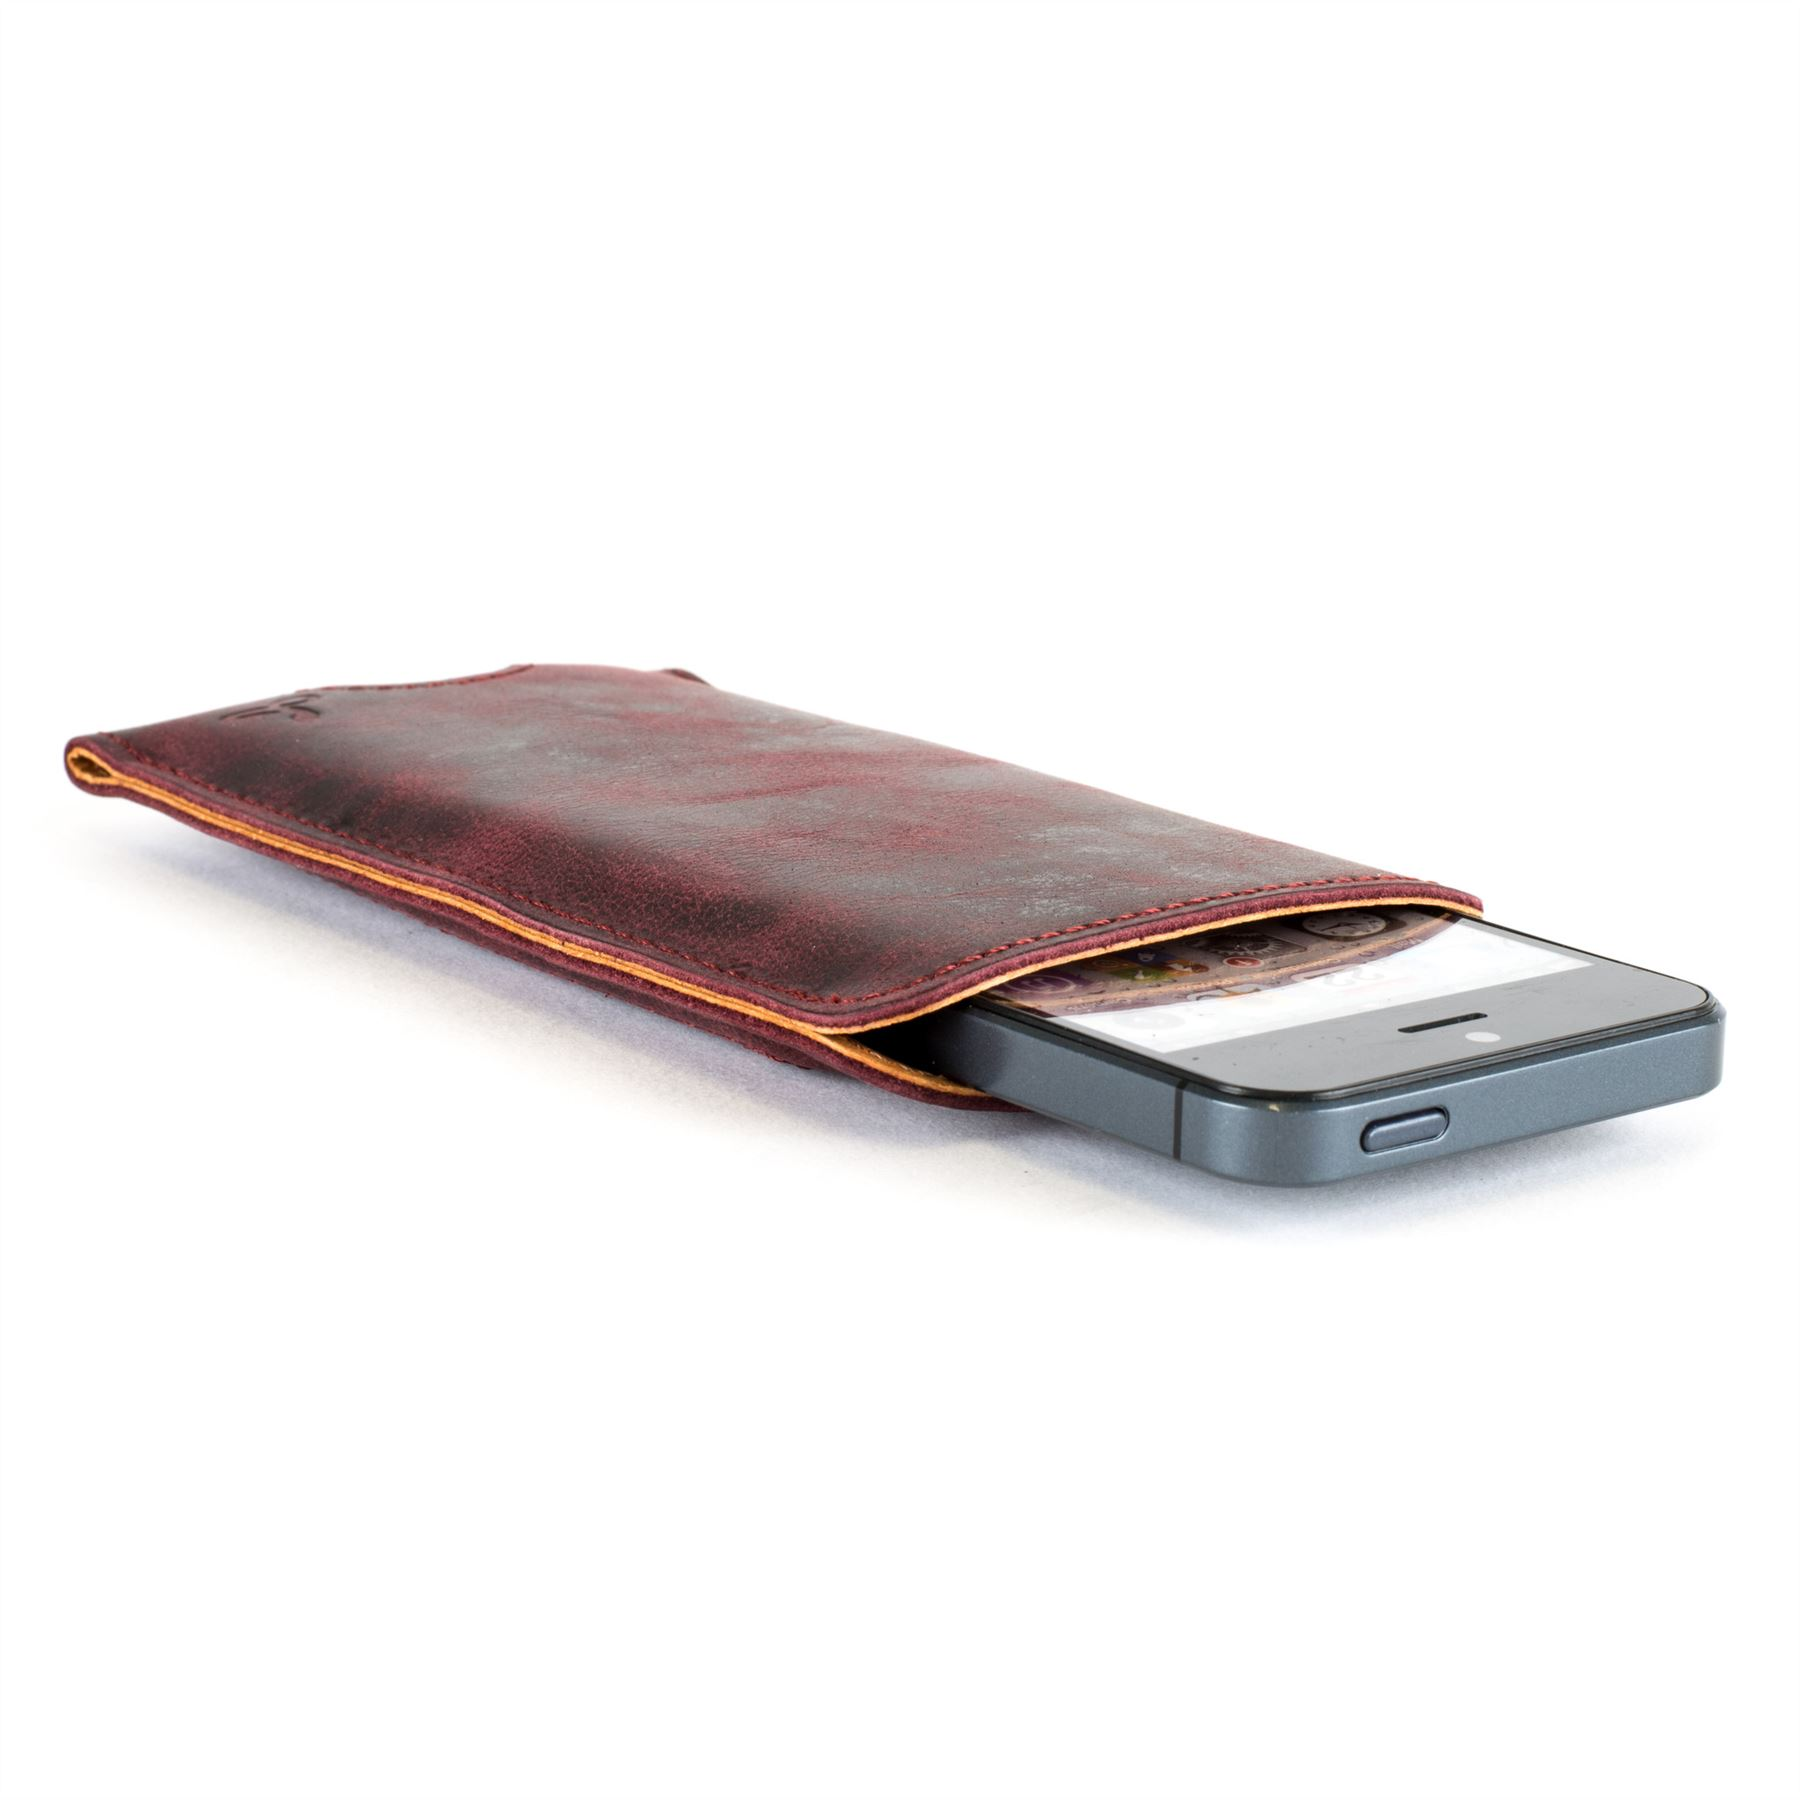 Snakehive vintage nubuck leather pouch case cover for apple iphone 5 5s se ebay - Iphone 5s leather case ...